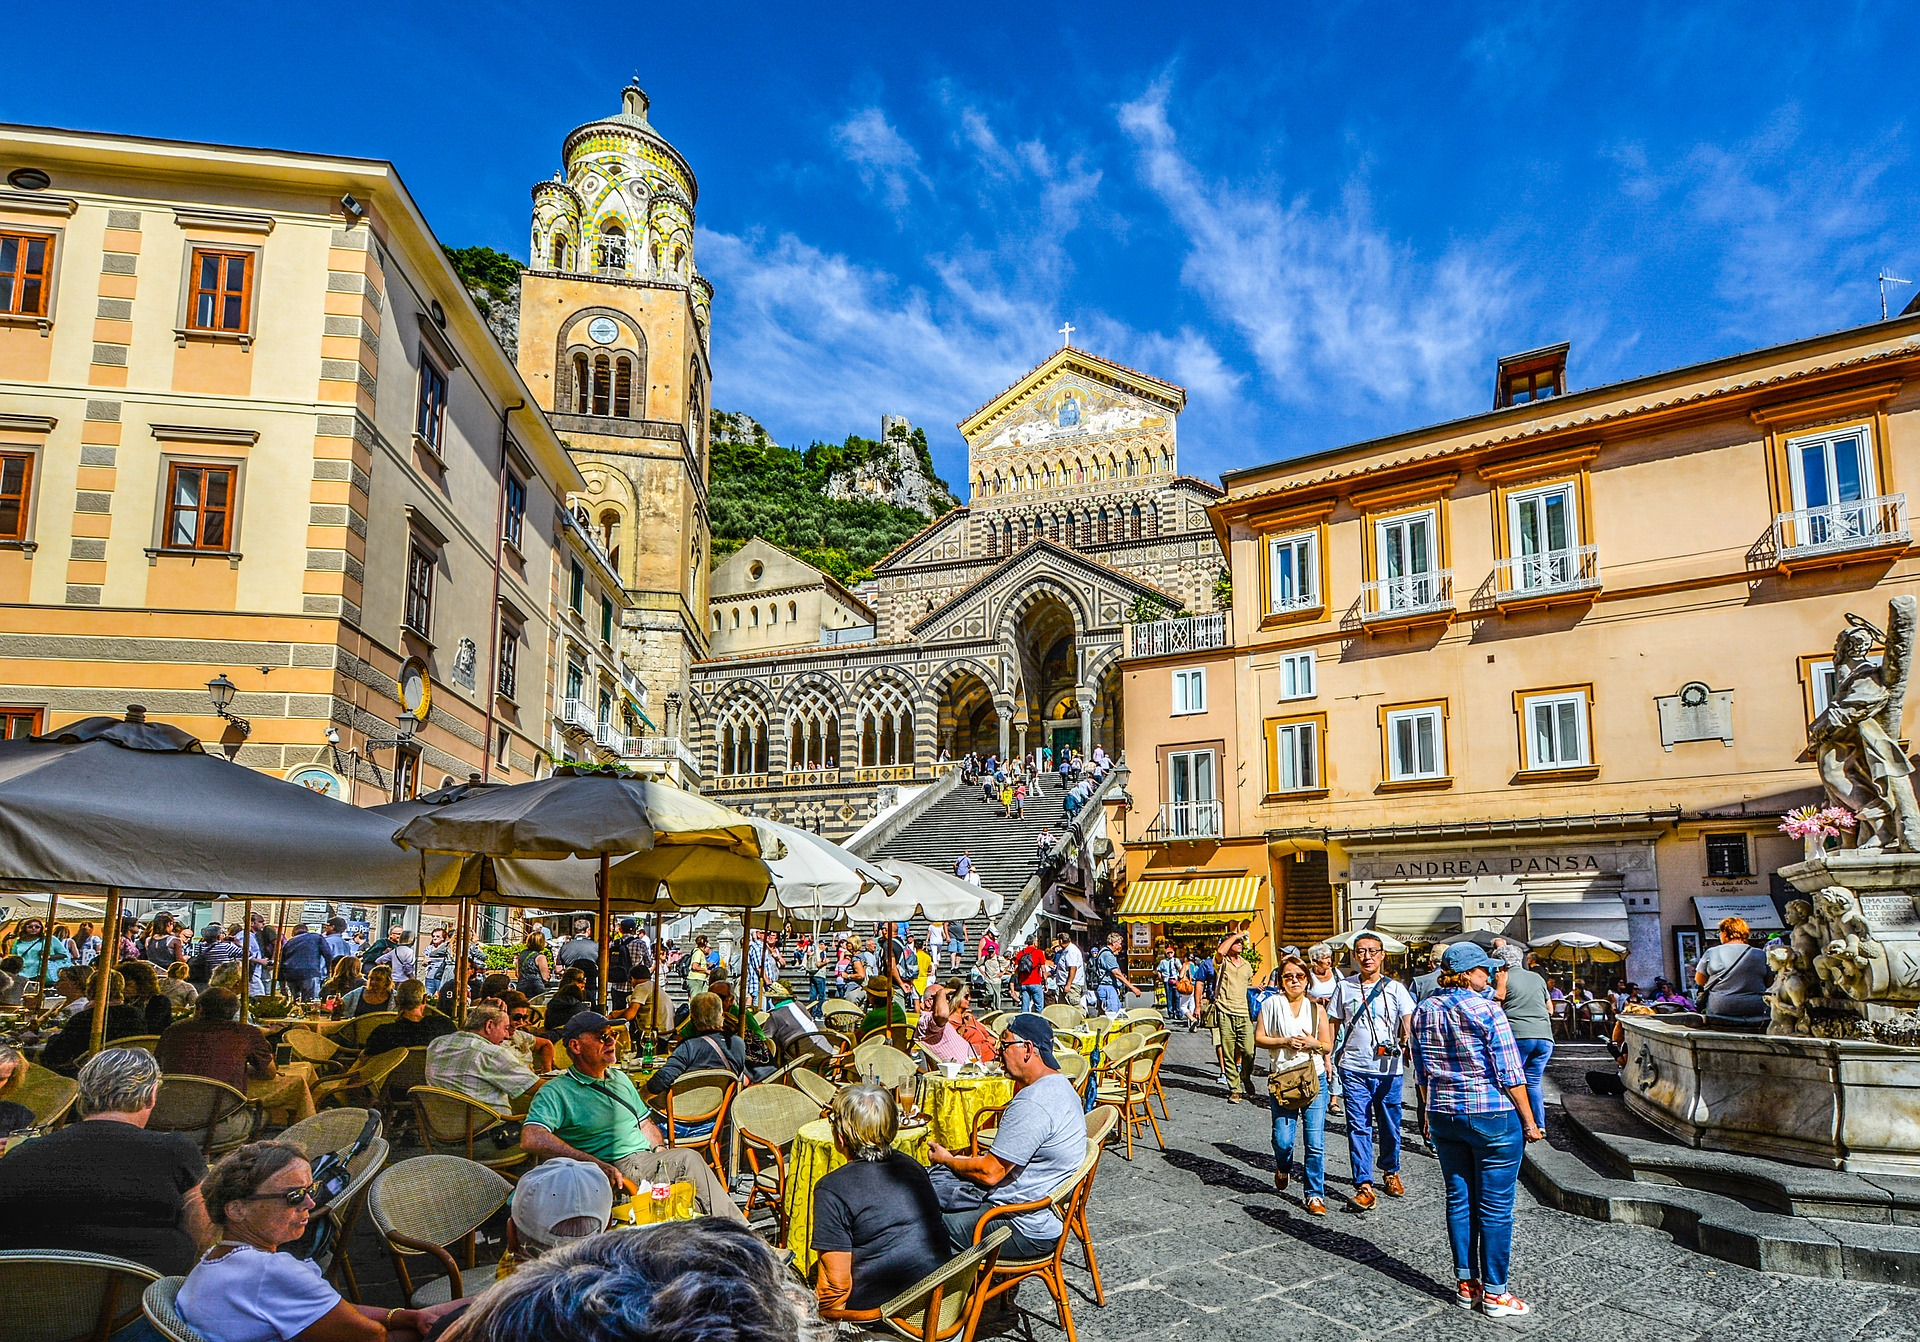 Summer flair in Amalfi Square, Italy